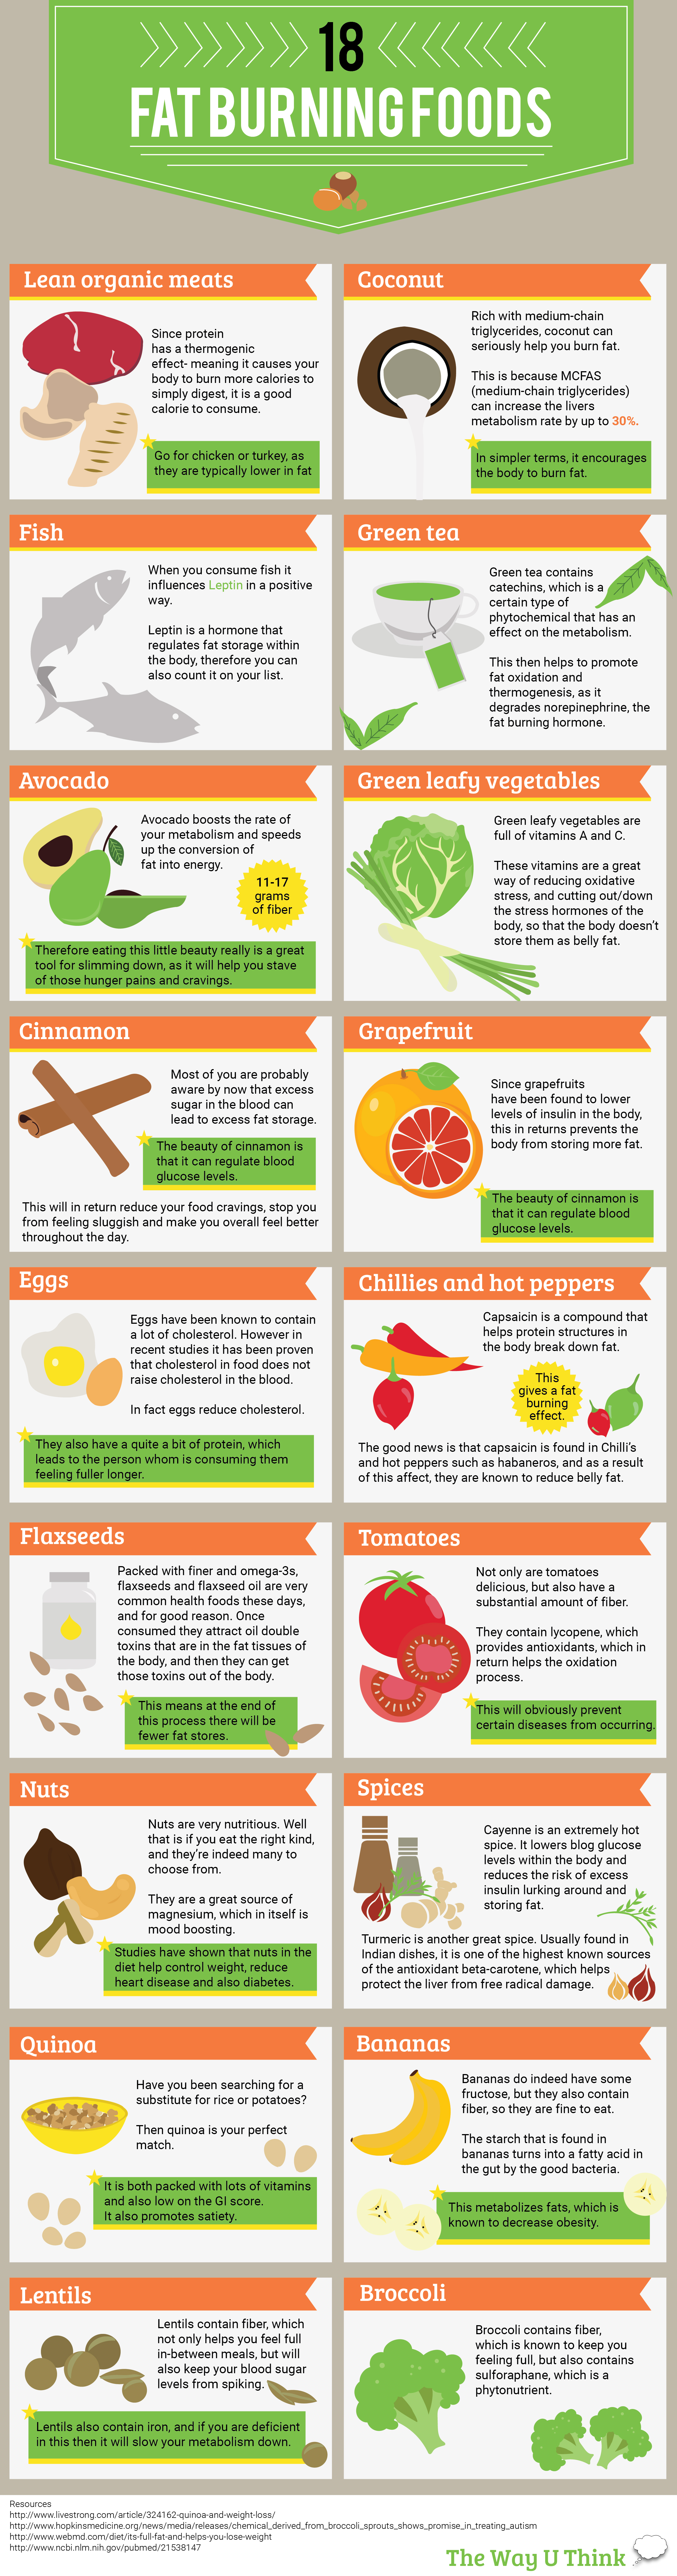 Infographic 18 Fat Burning Foods For Health Conscious